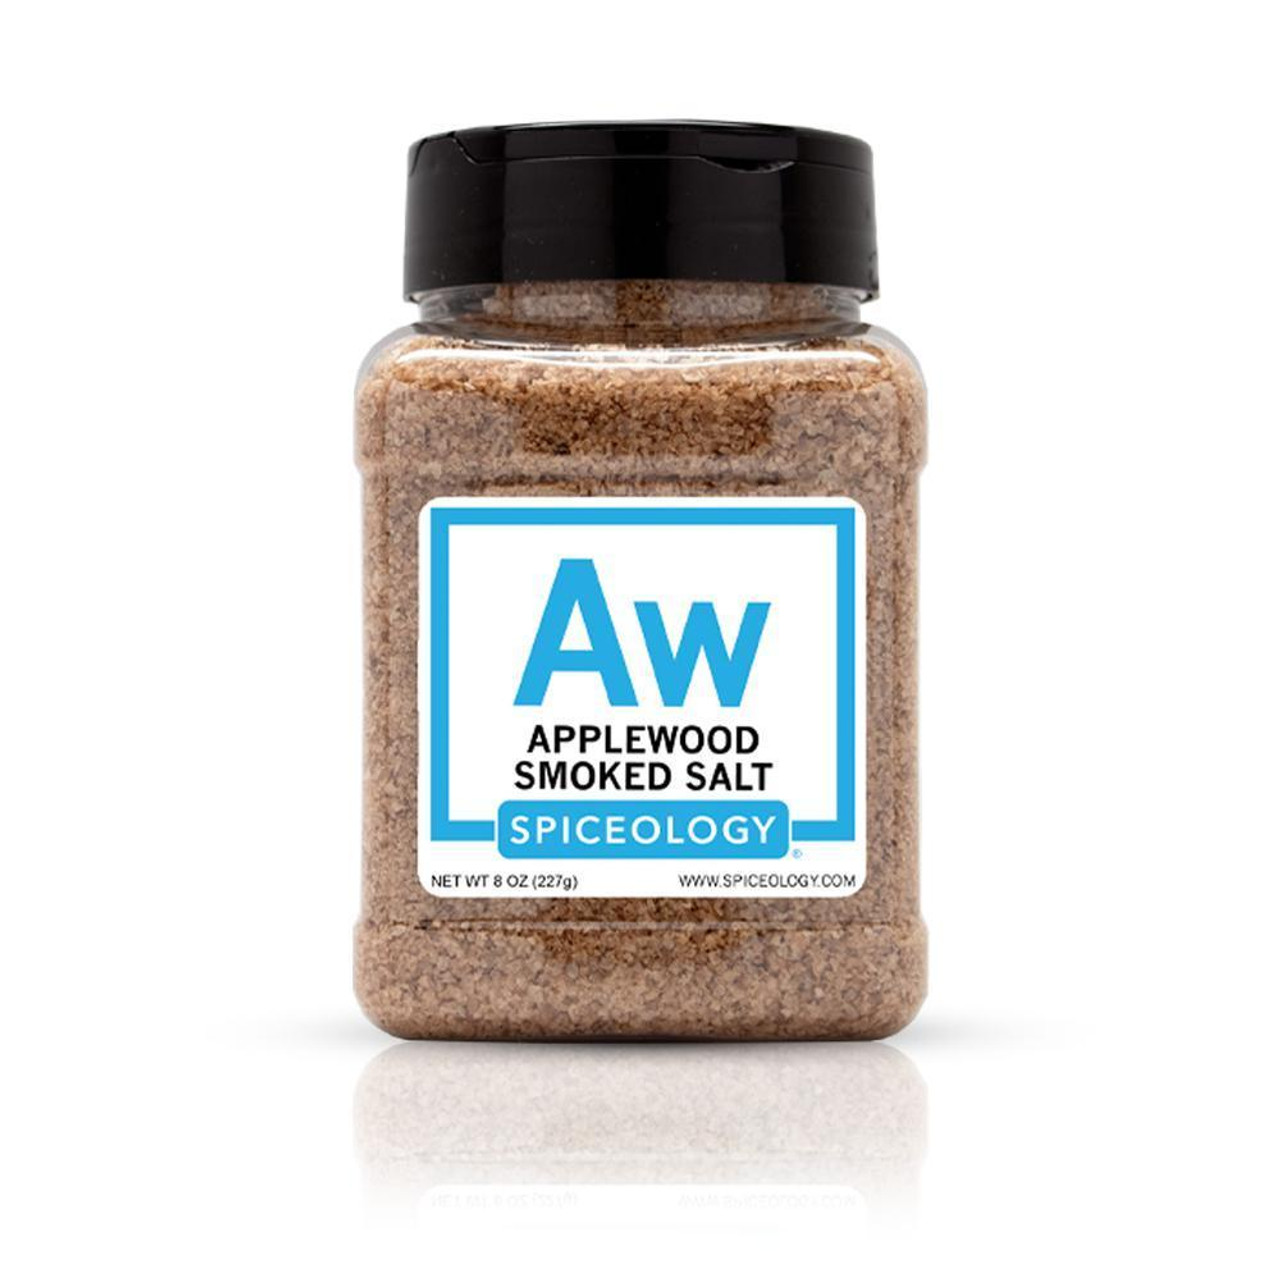 SPICEOLOGY INFUSED SALT - APPLEWOOD SMOKED SALT